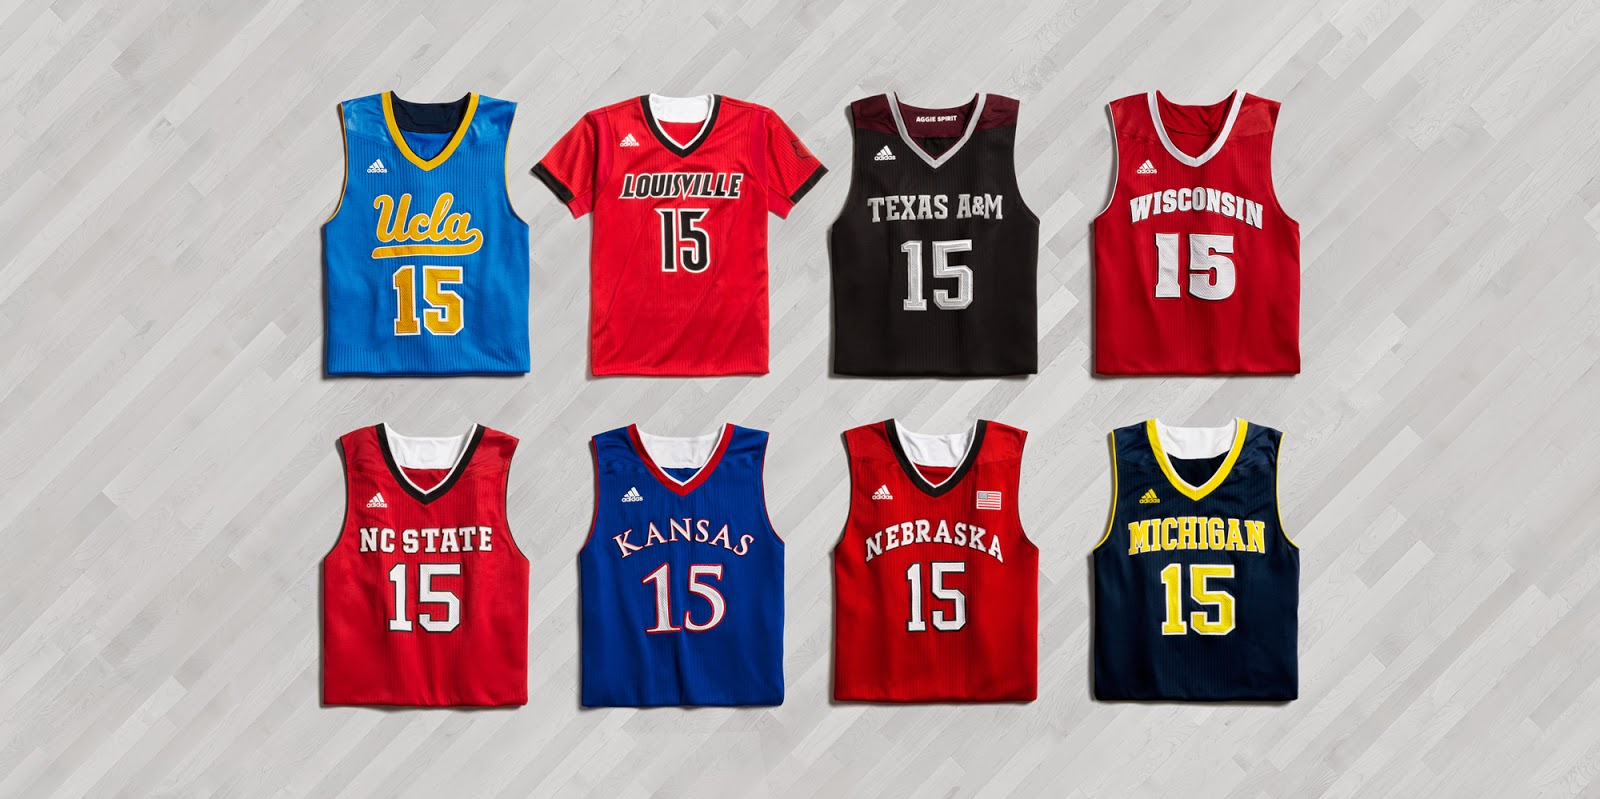 95752ef76108 adidas Unveils New College Basketball Uniforms for March Madness ...